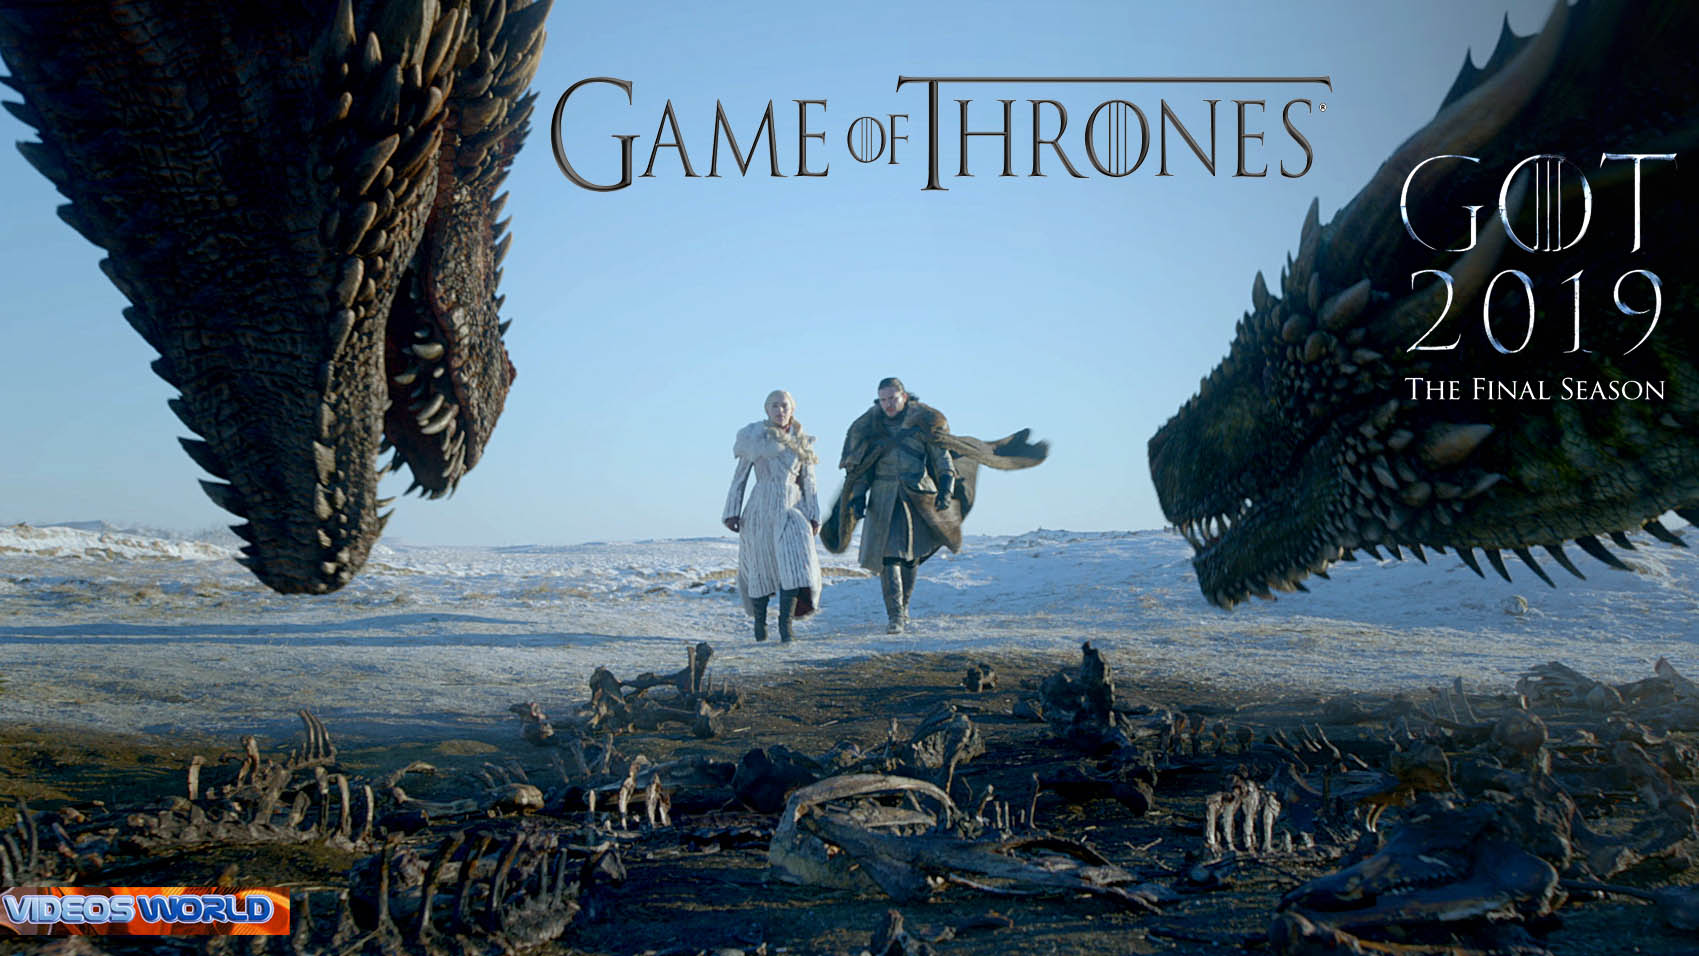 Game of Thrones returns for its final season 8